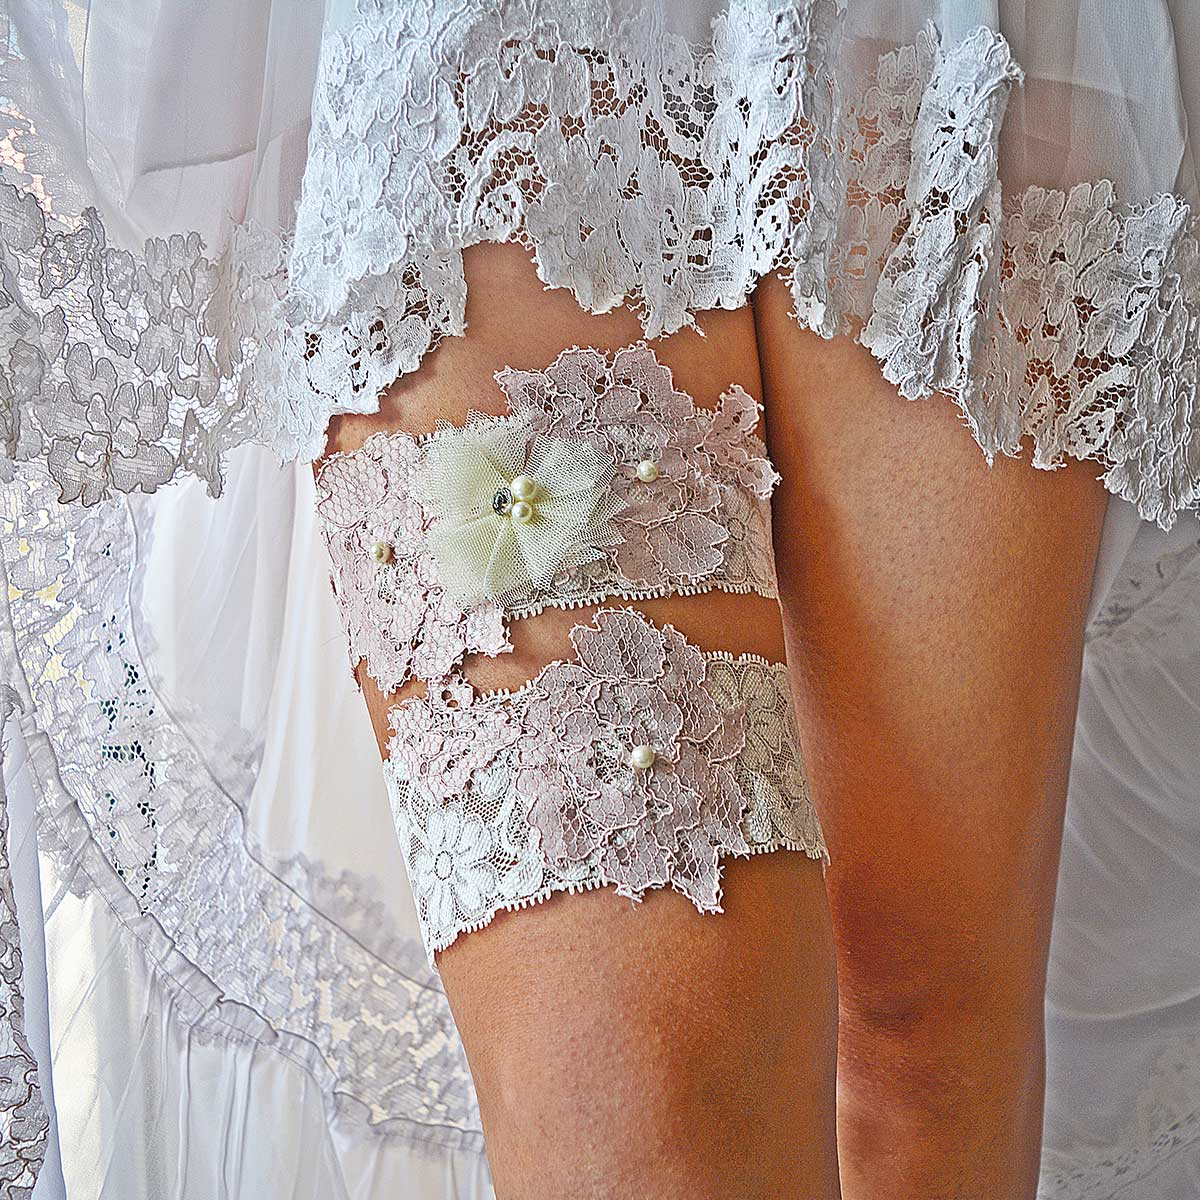 White Garter With Pink Applique Lace & Pearls & Tulle Flower - Wedding Garter - SuzannaM Designs